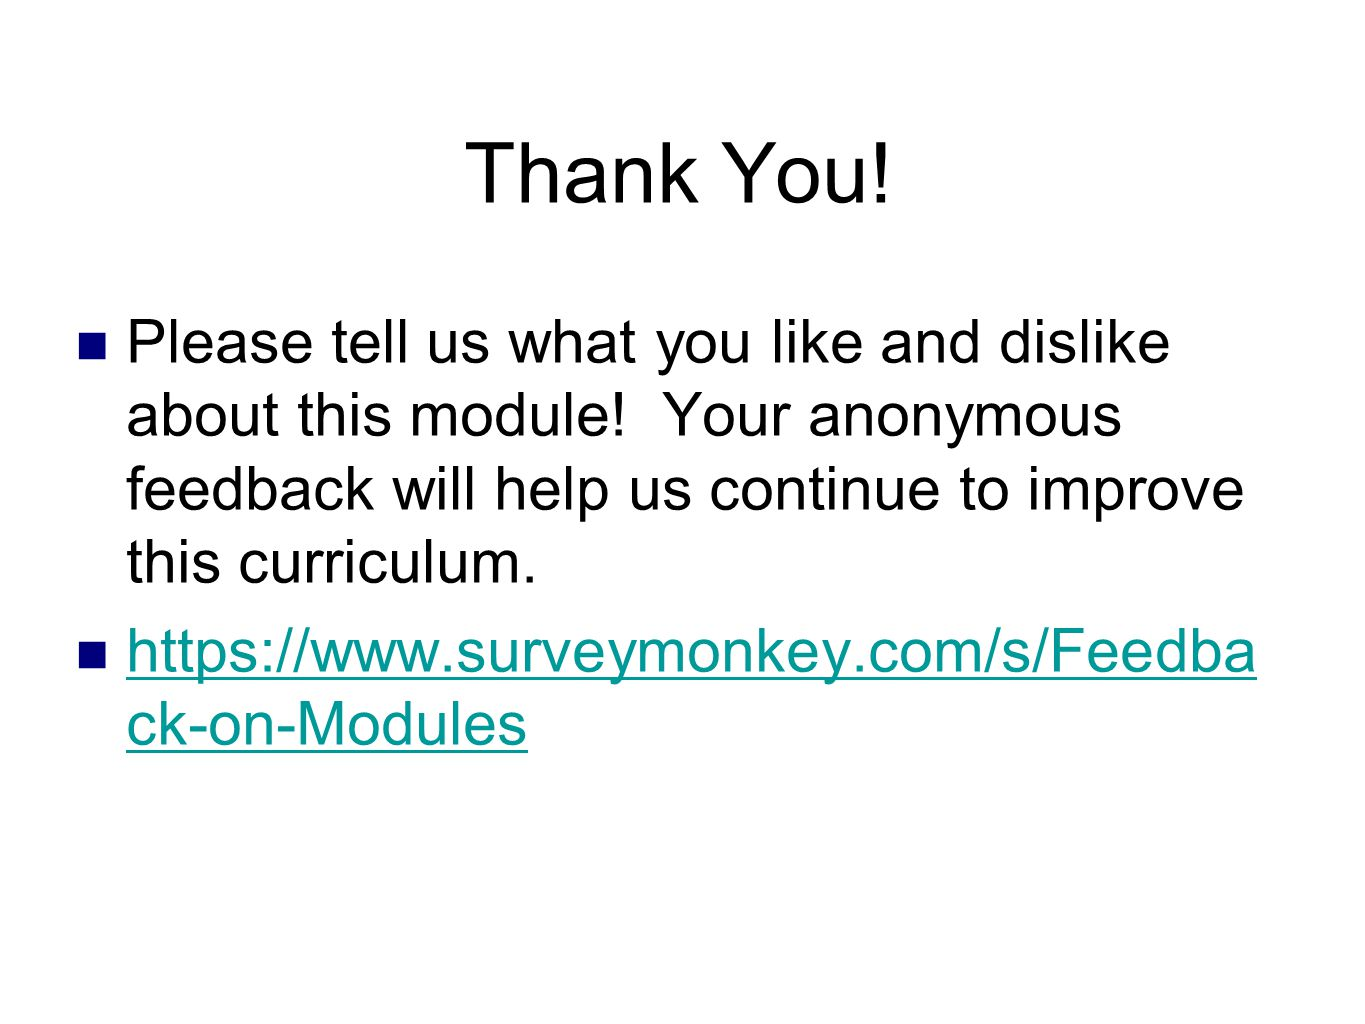 Thank You! Please tell us what you like and dislike about this module! Your anonymous feedback will help us continue to improve this curriculum.